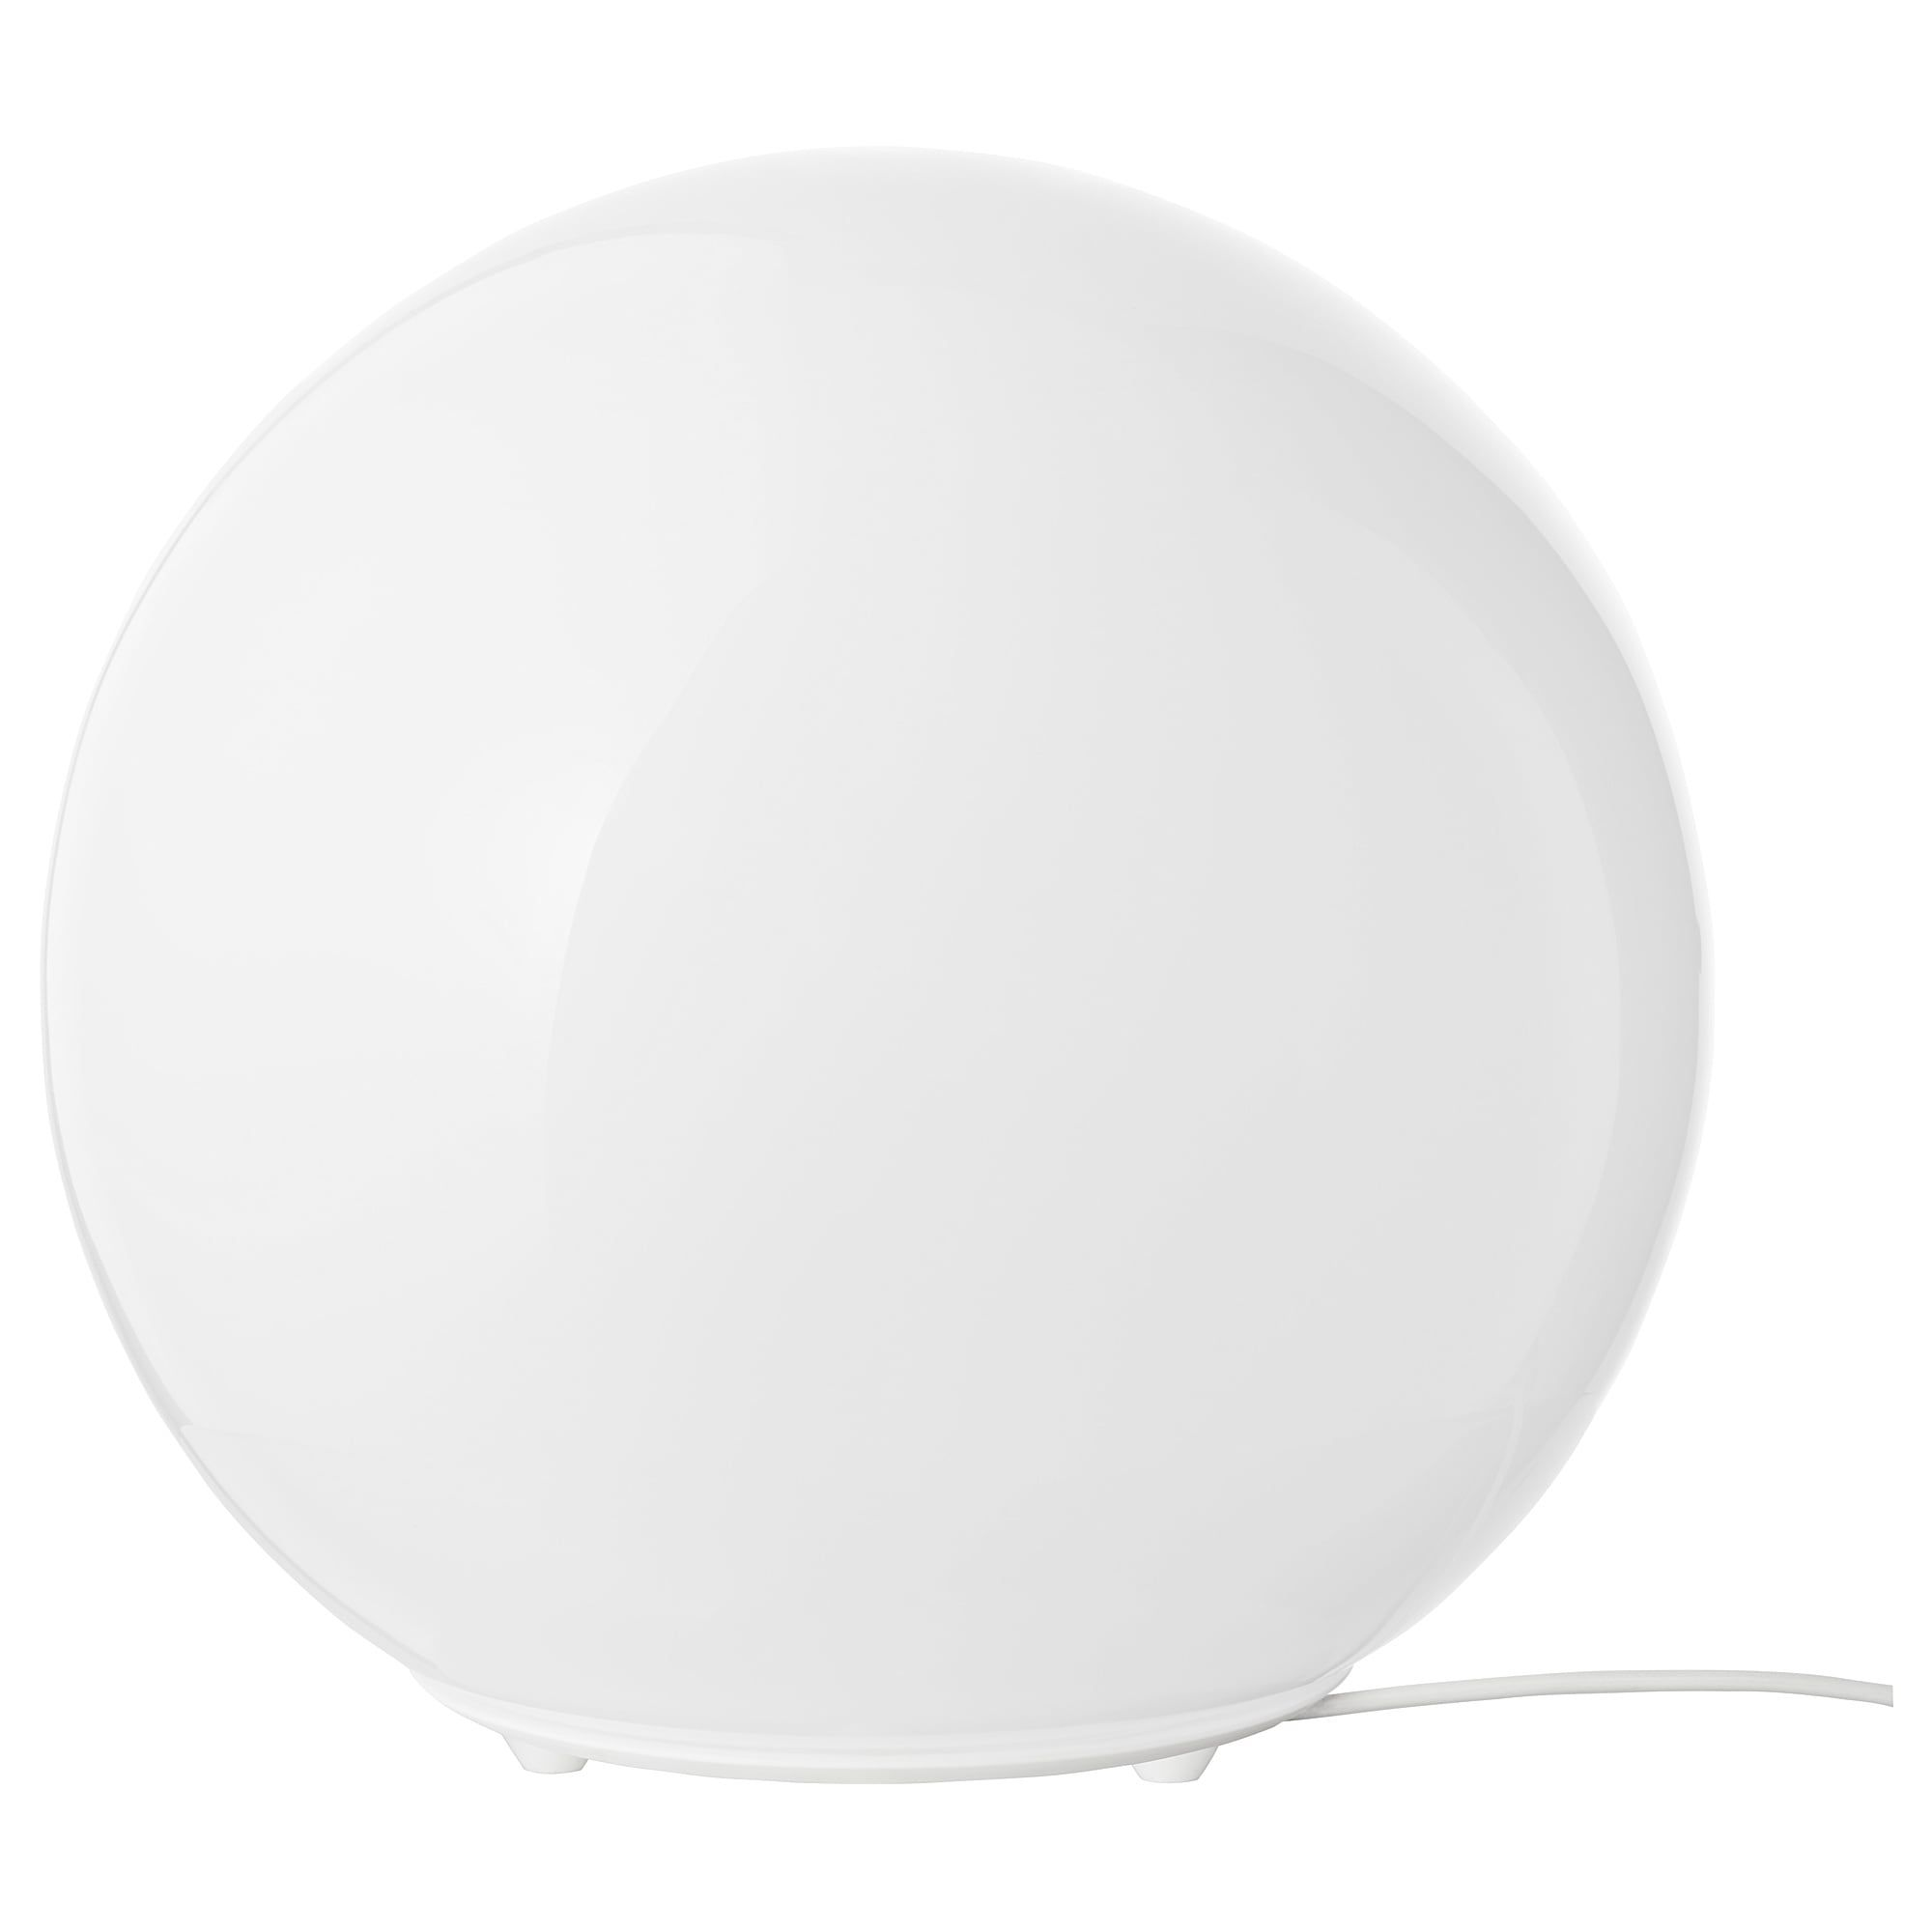 Ikea Lampe De Table.Fado Lampe De Table Blanc Coaching Grand Salon Lampe